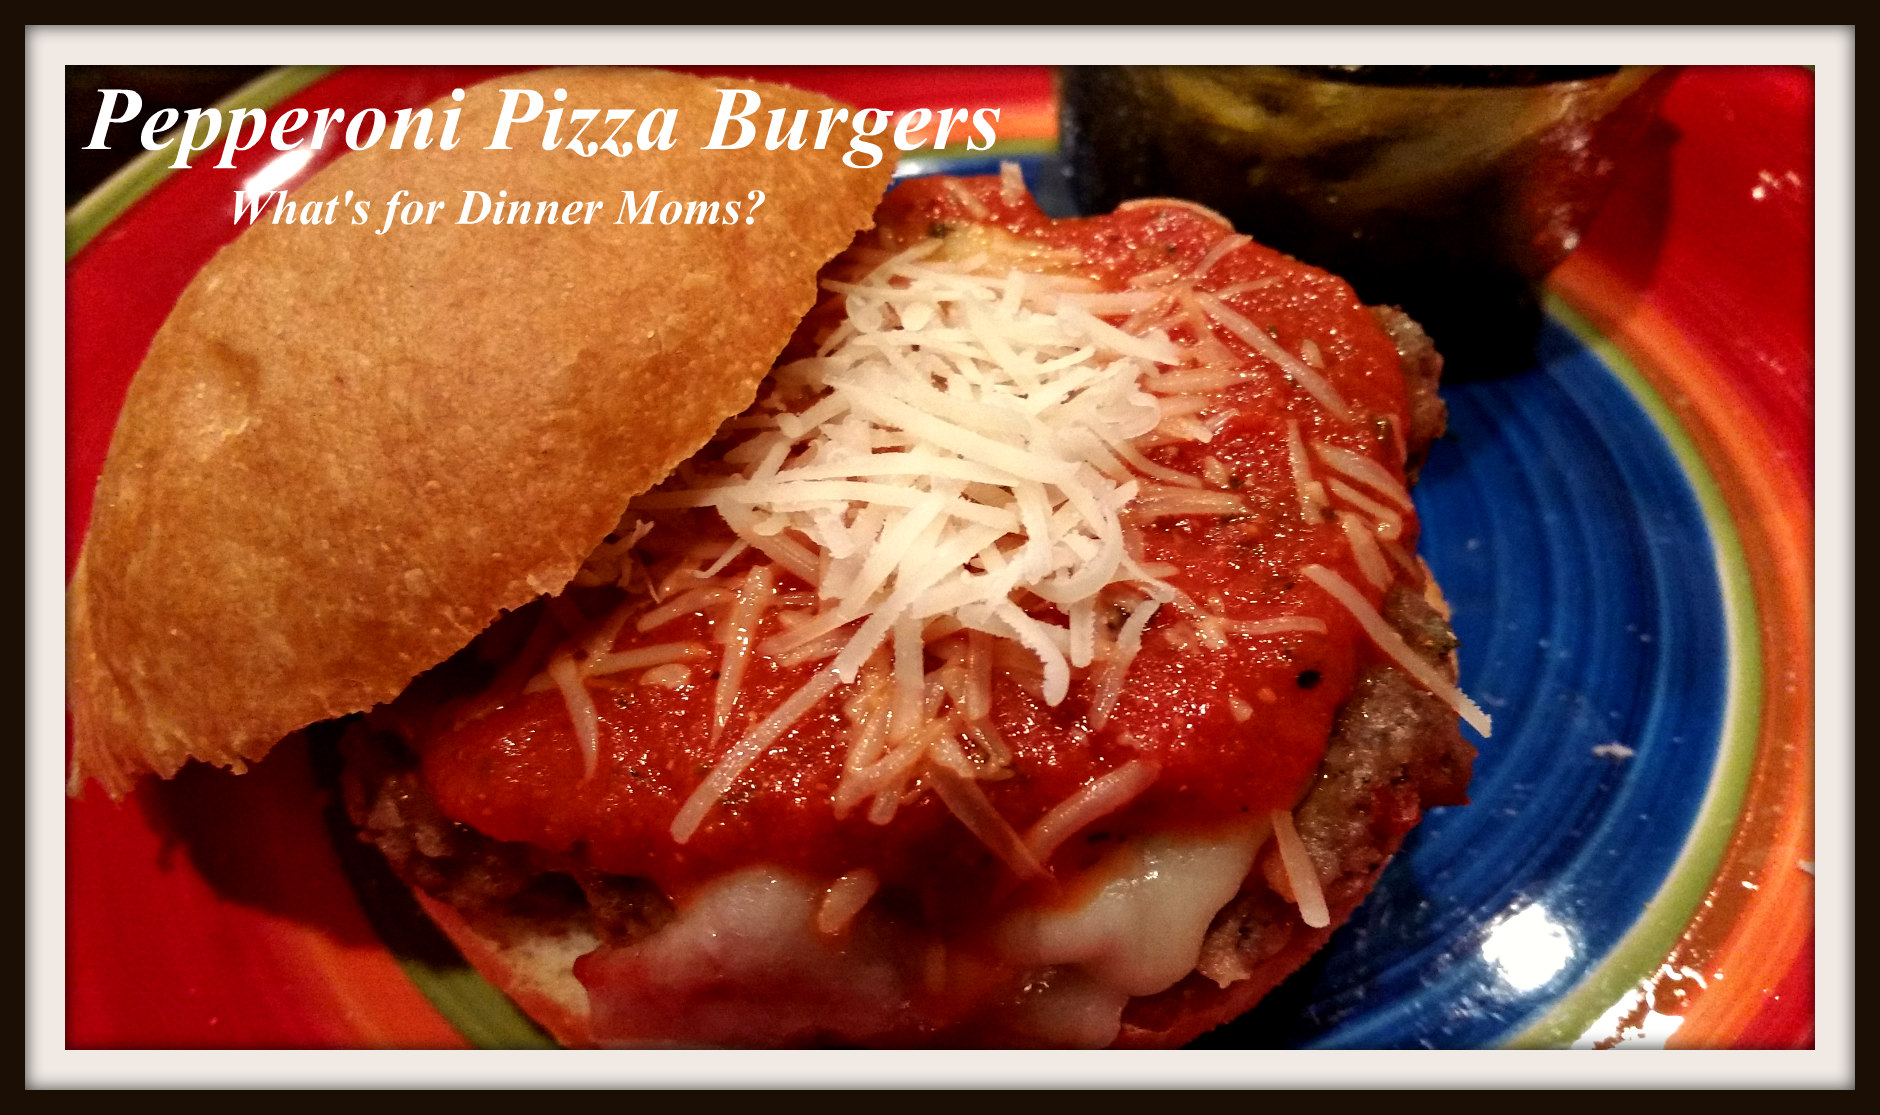 Pepperoni Pizza Burgers – What's for Dinner Moms?